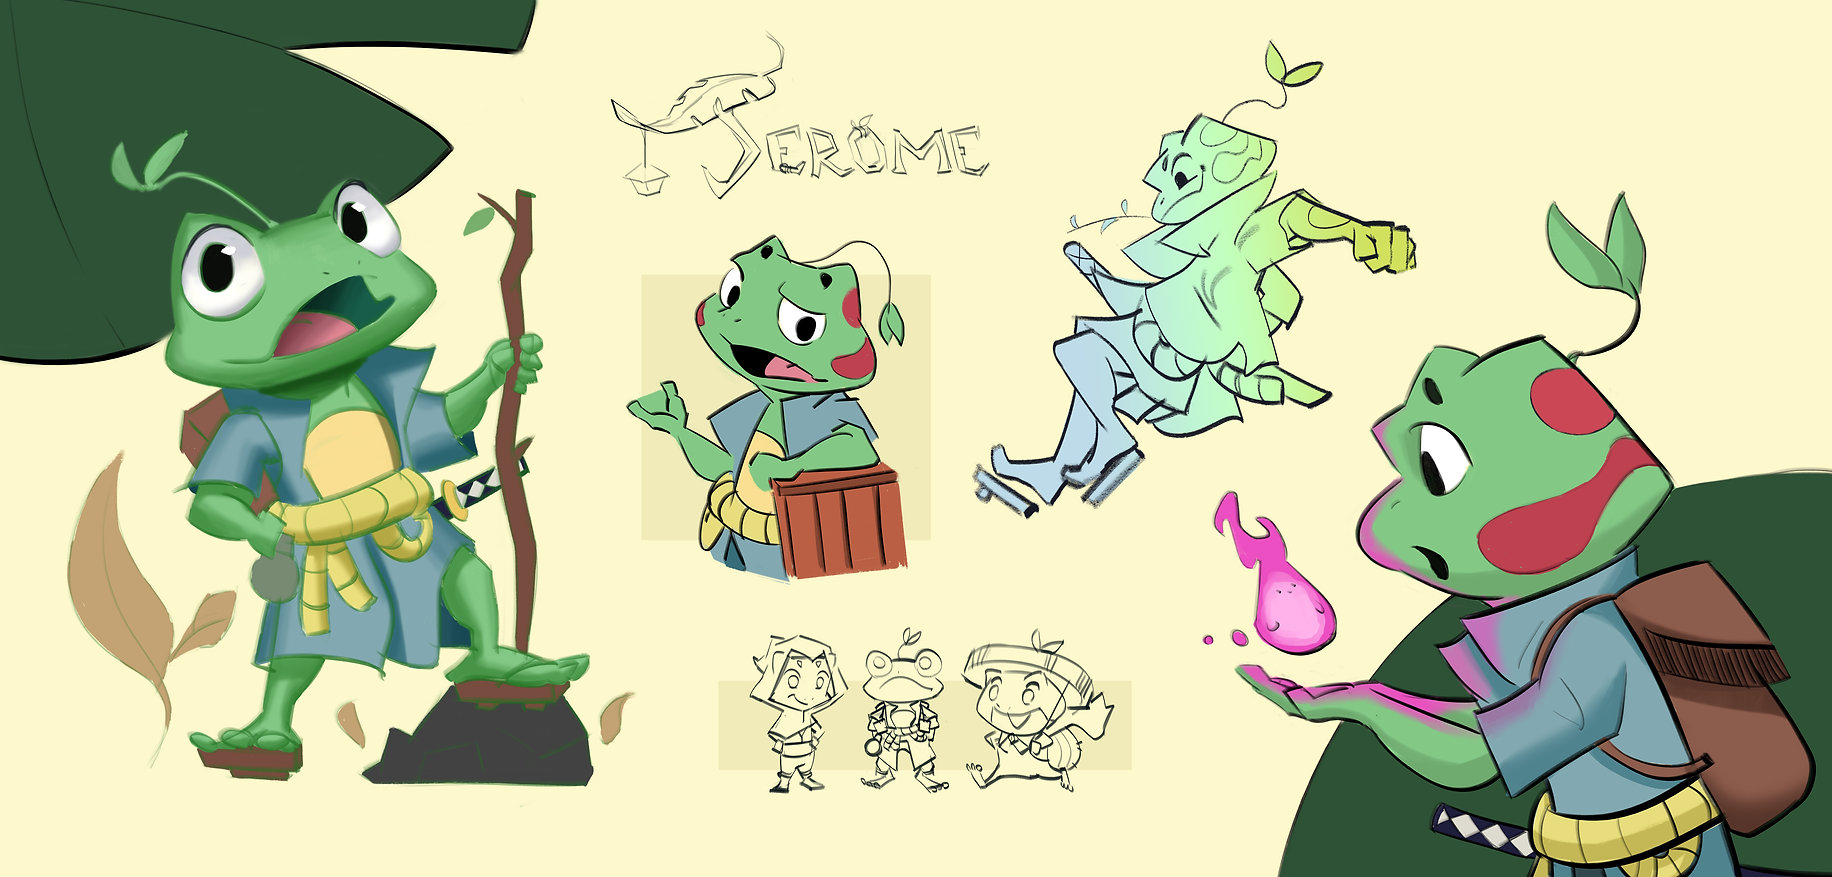 Jerome Character Page 01.jpg